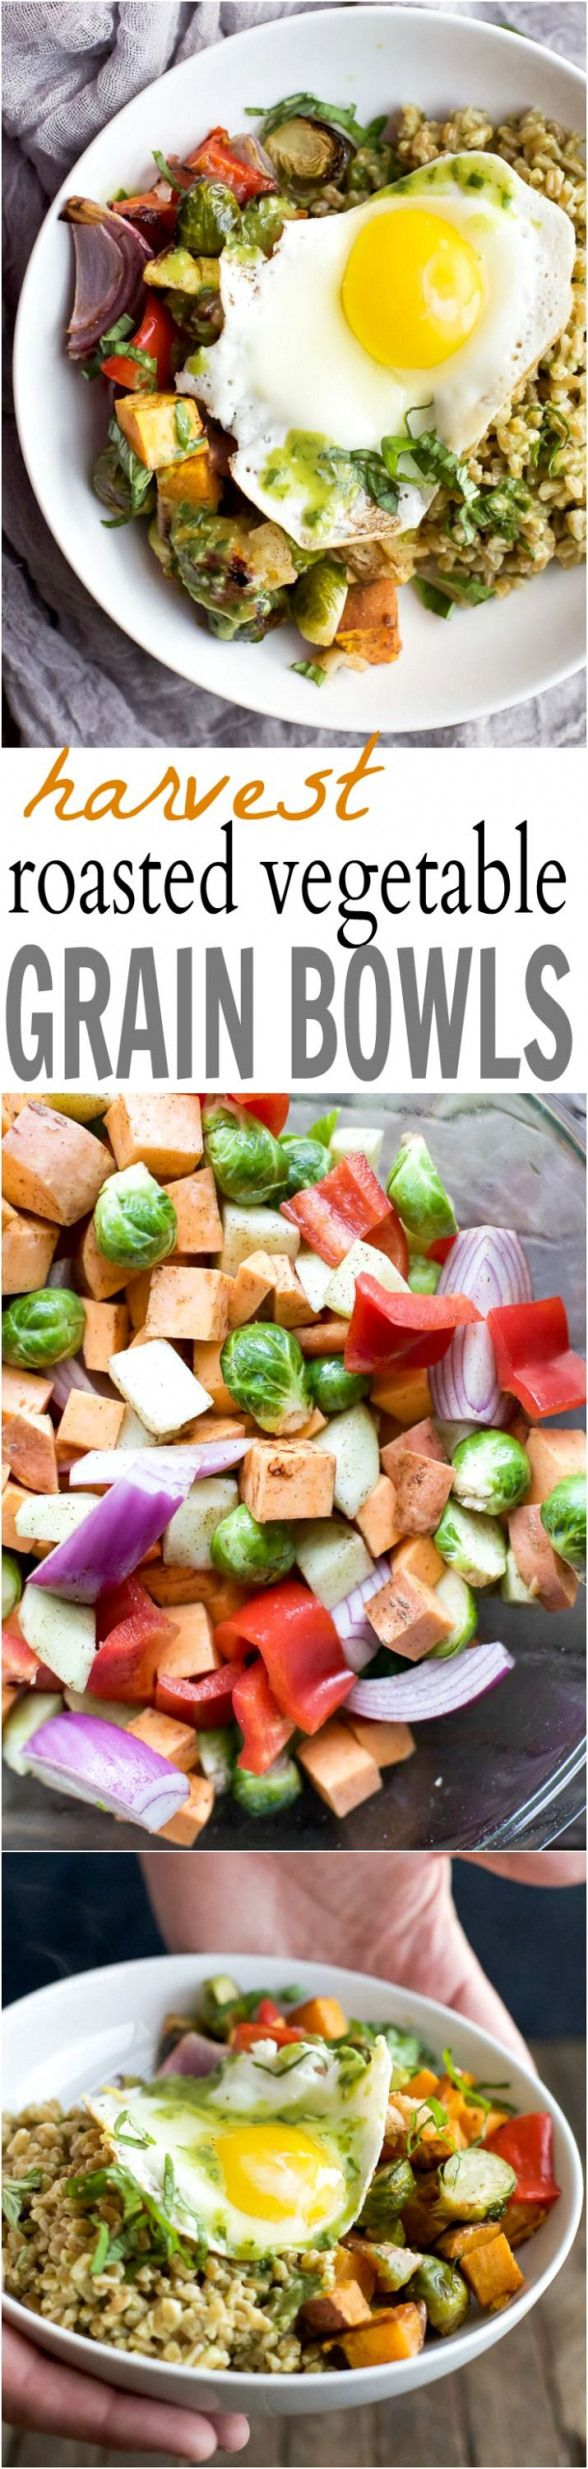 Harvest Roasted Vegetable Grain Bowls  a healthy filling fall inspired dinner recipe packed with nutrients and bursting with flavor Youll love the dressing the farro is t...